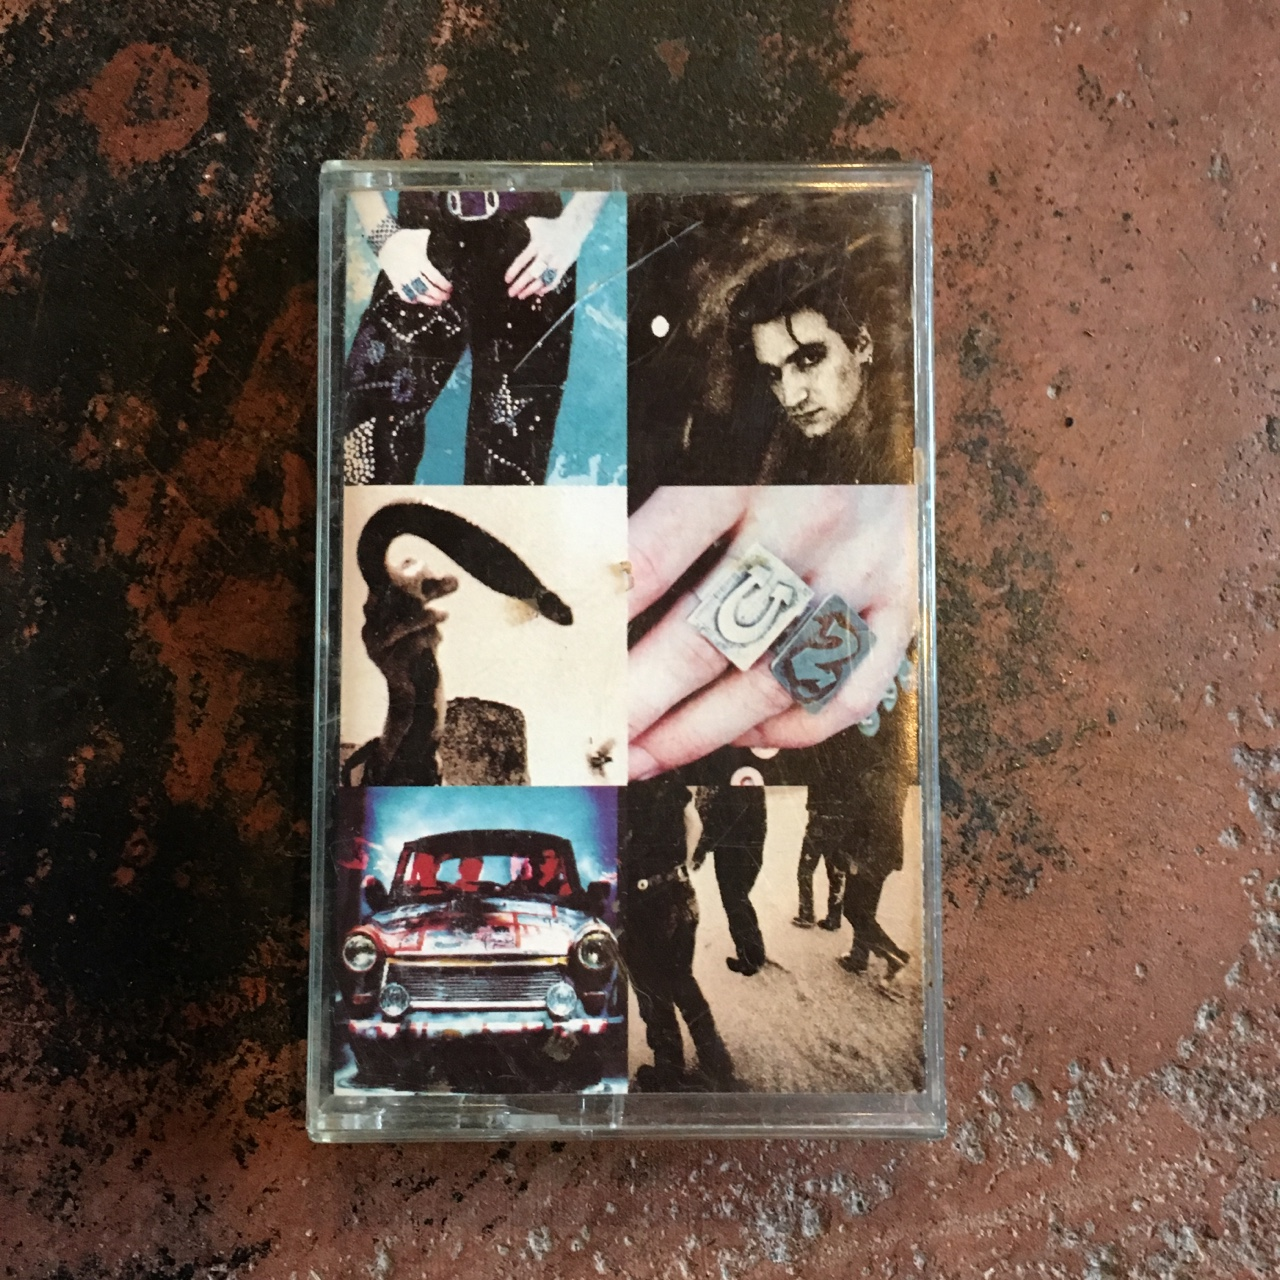 U2 Achtung Baby ©1991 some sticker residue on back